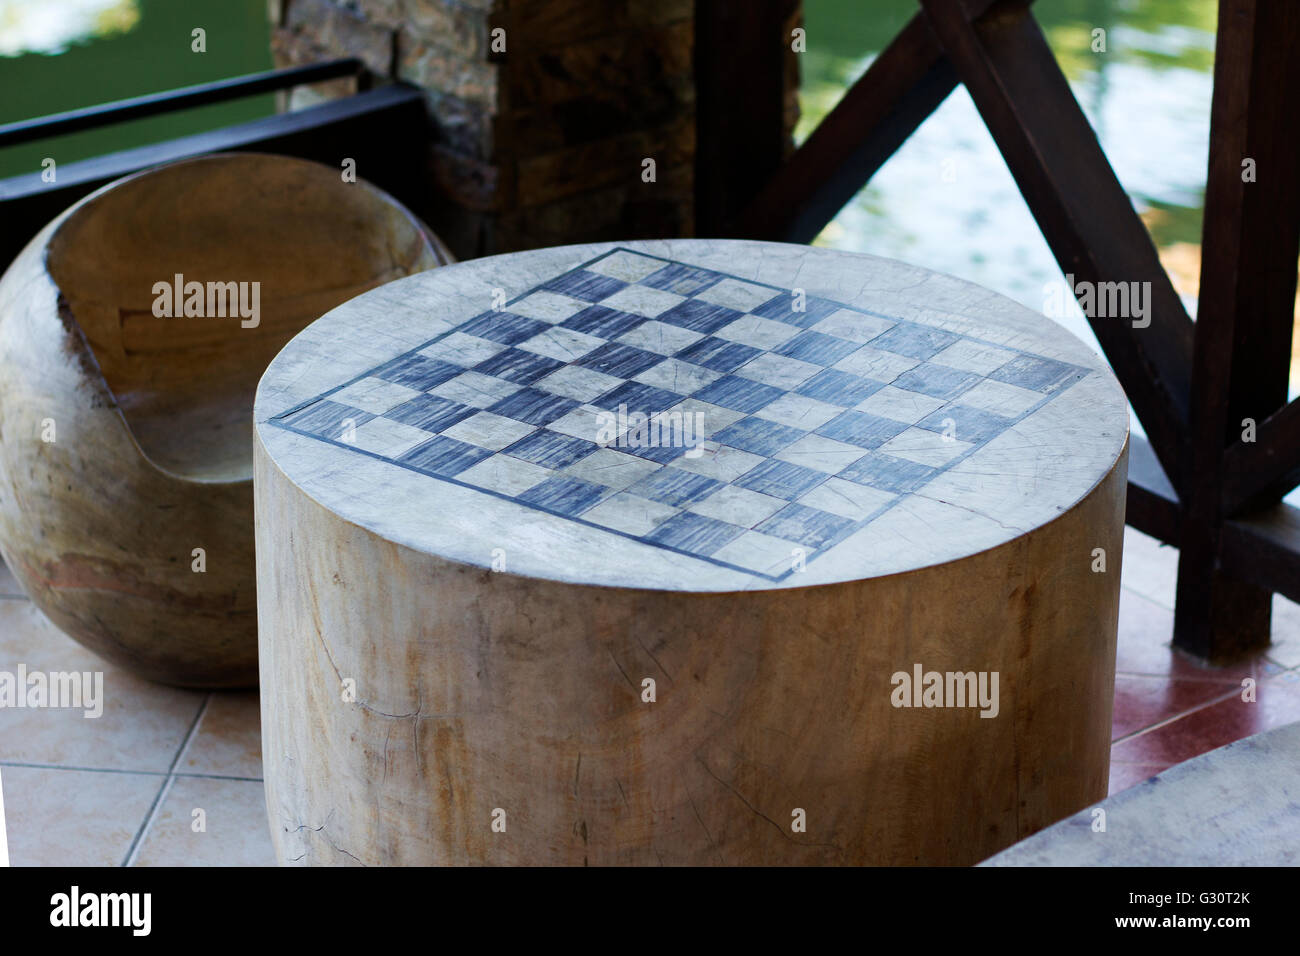 Chessboard drawn in wooden table - Stock Image